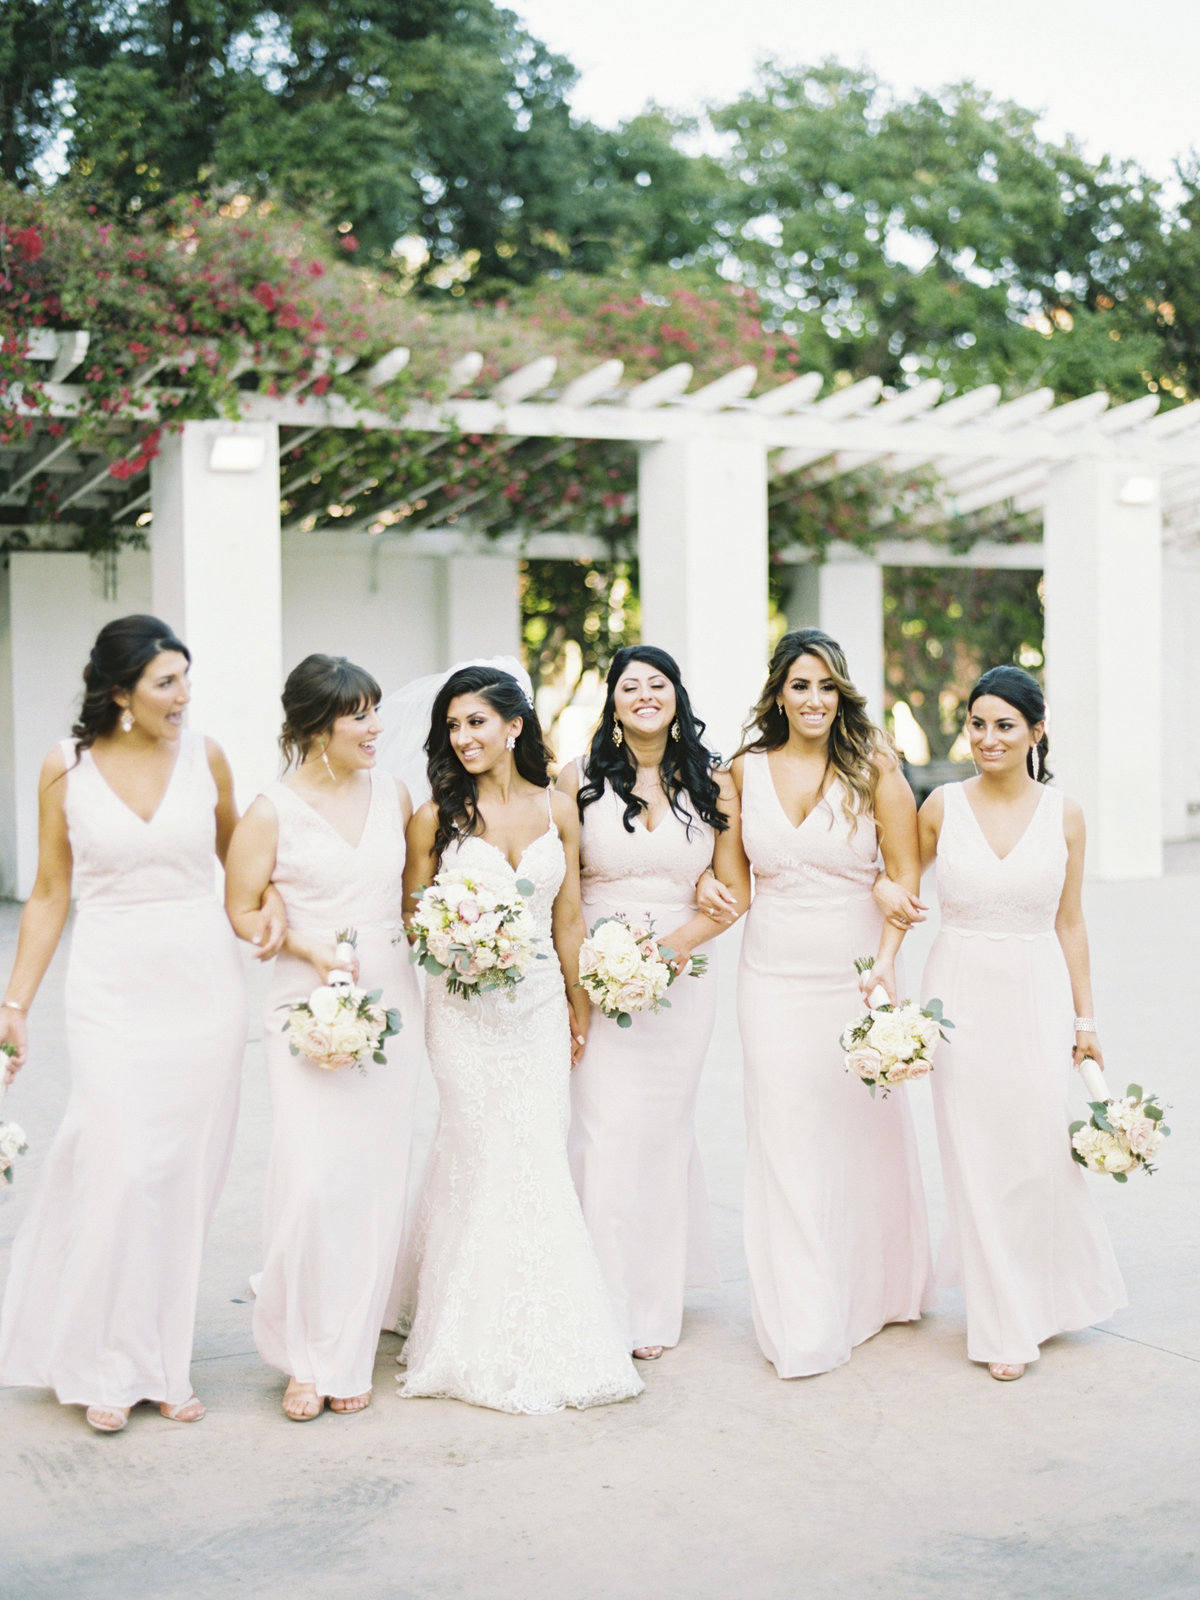 st.petersburg bridesmaids wearing blush dresses